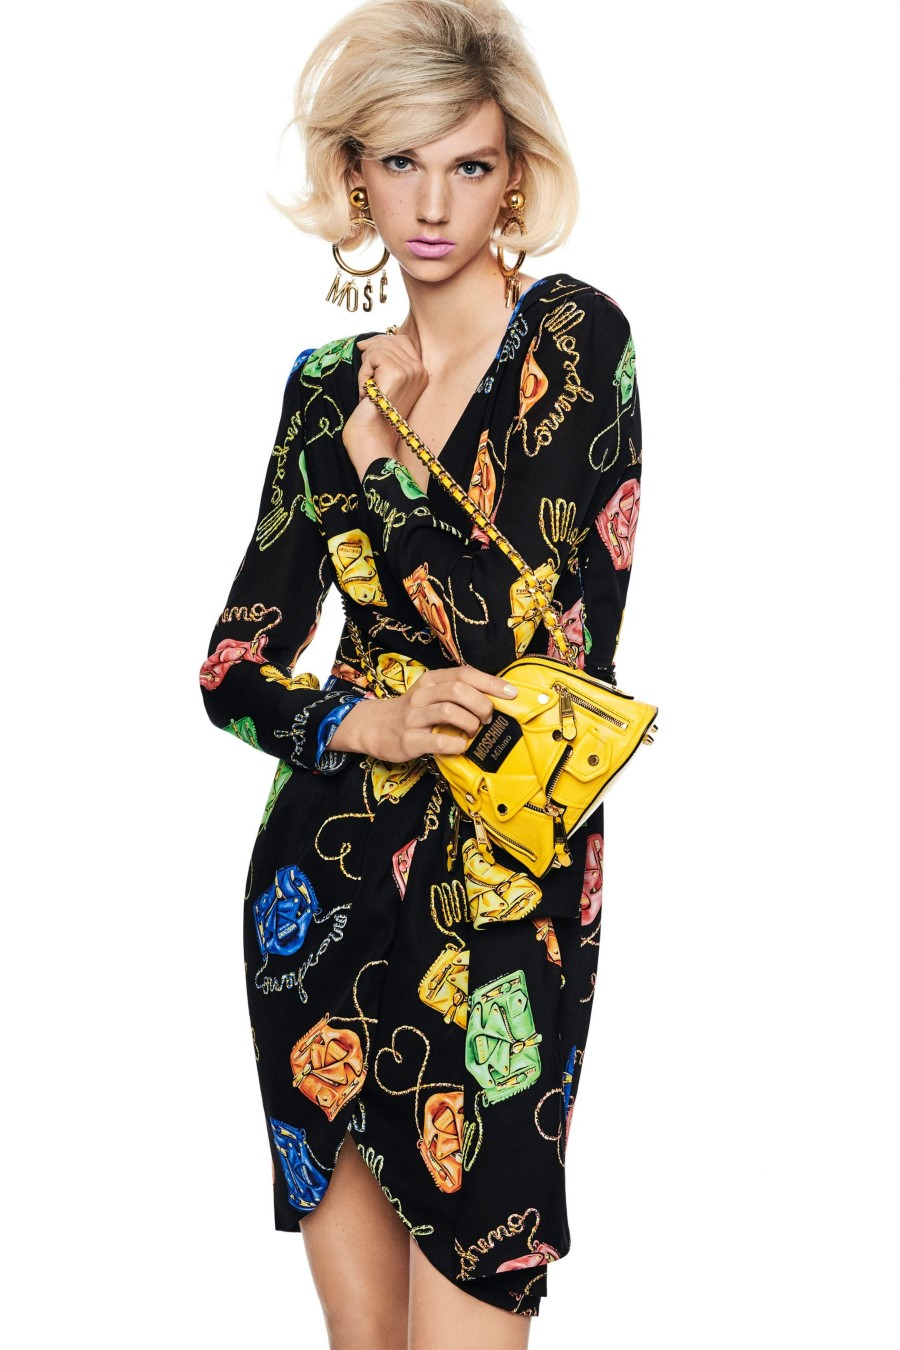 Moschino Resort 2021 Lookbook